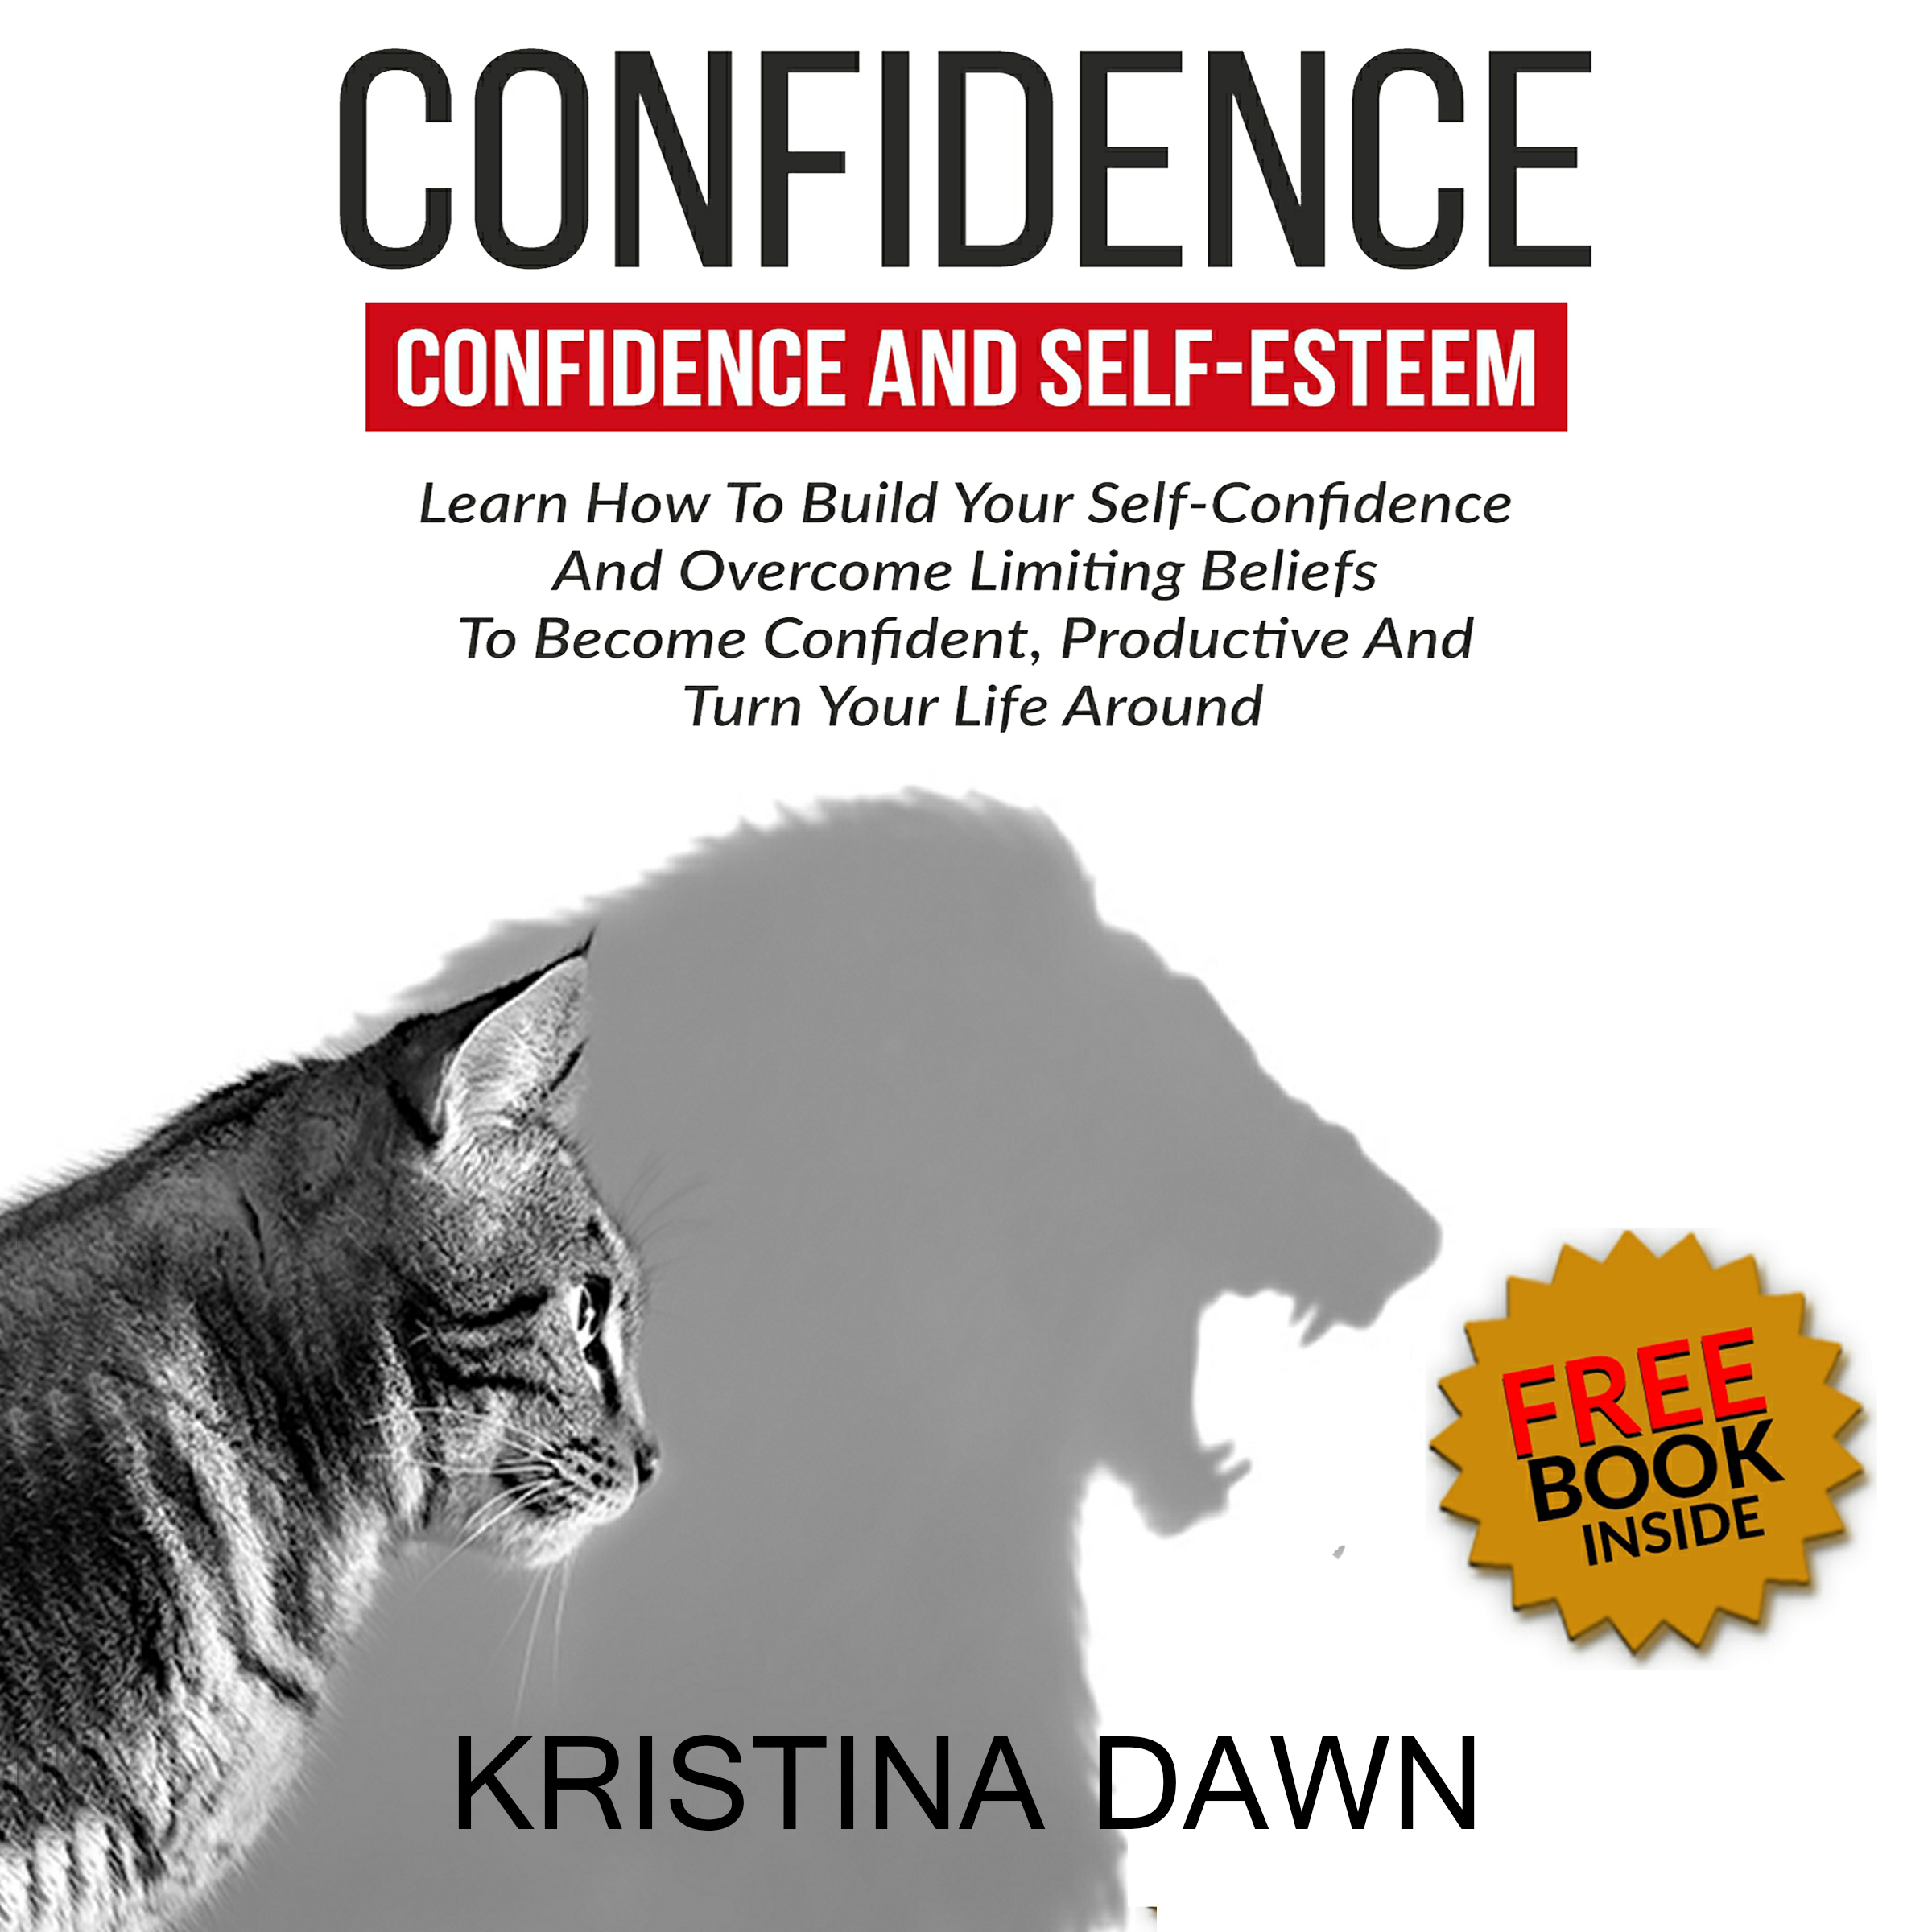 Printable Confidence And Self-Esteem:  How to Build Your Confidence And Overcome Limiting Beliefs Audiobook Cover Art